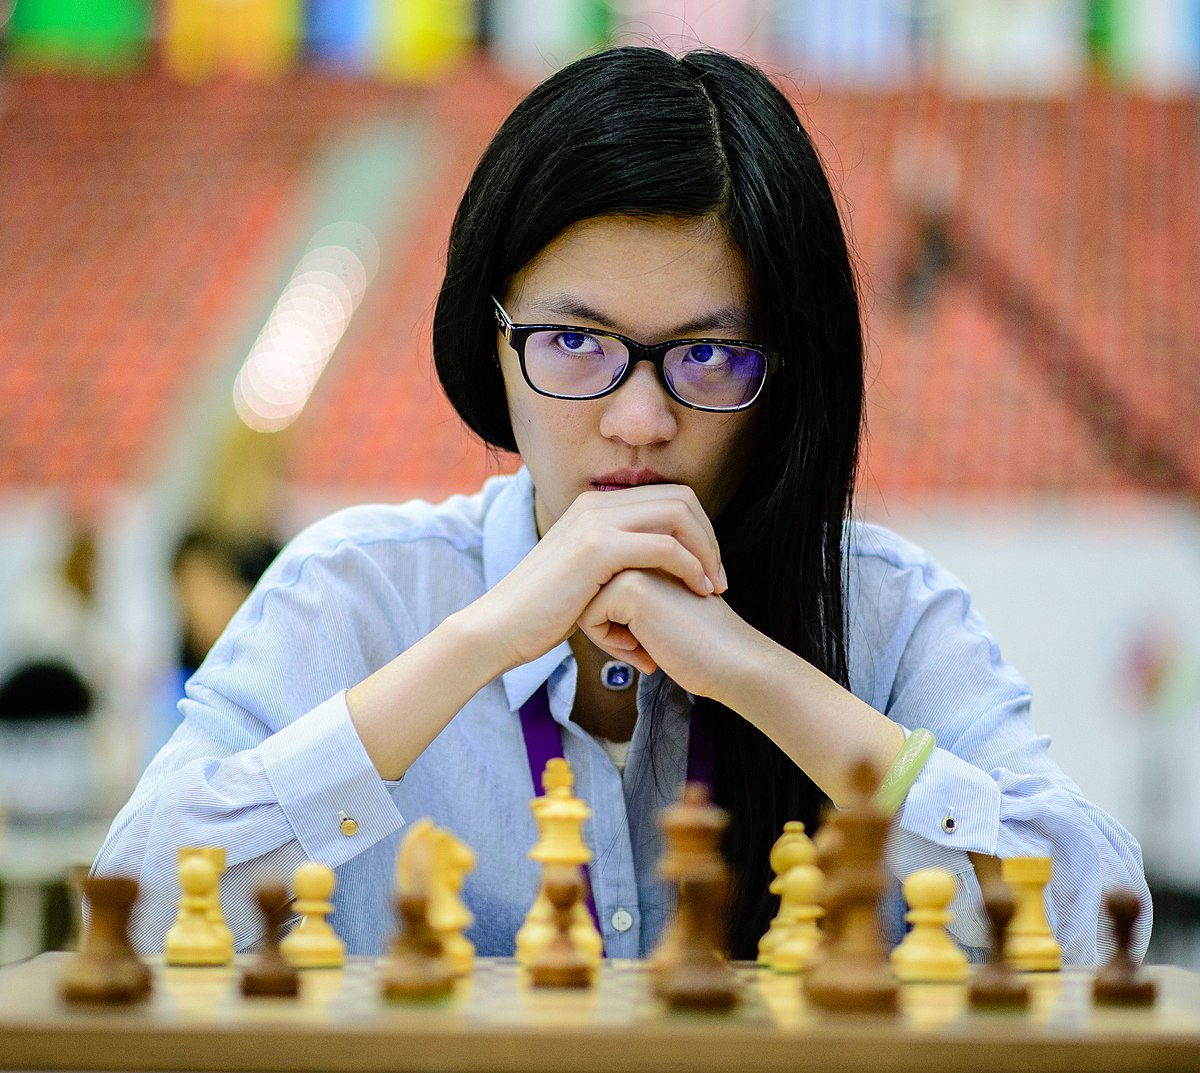 Hou Yifan - The yougest female Grandmaster